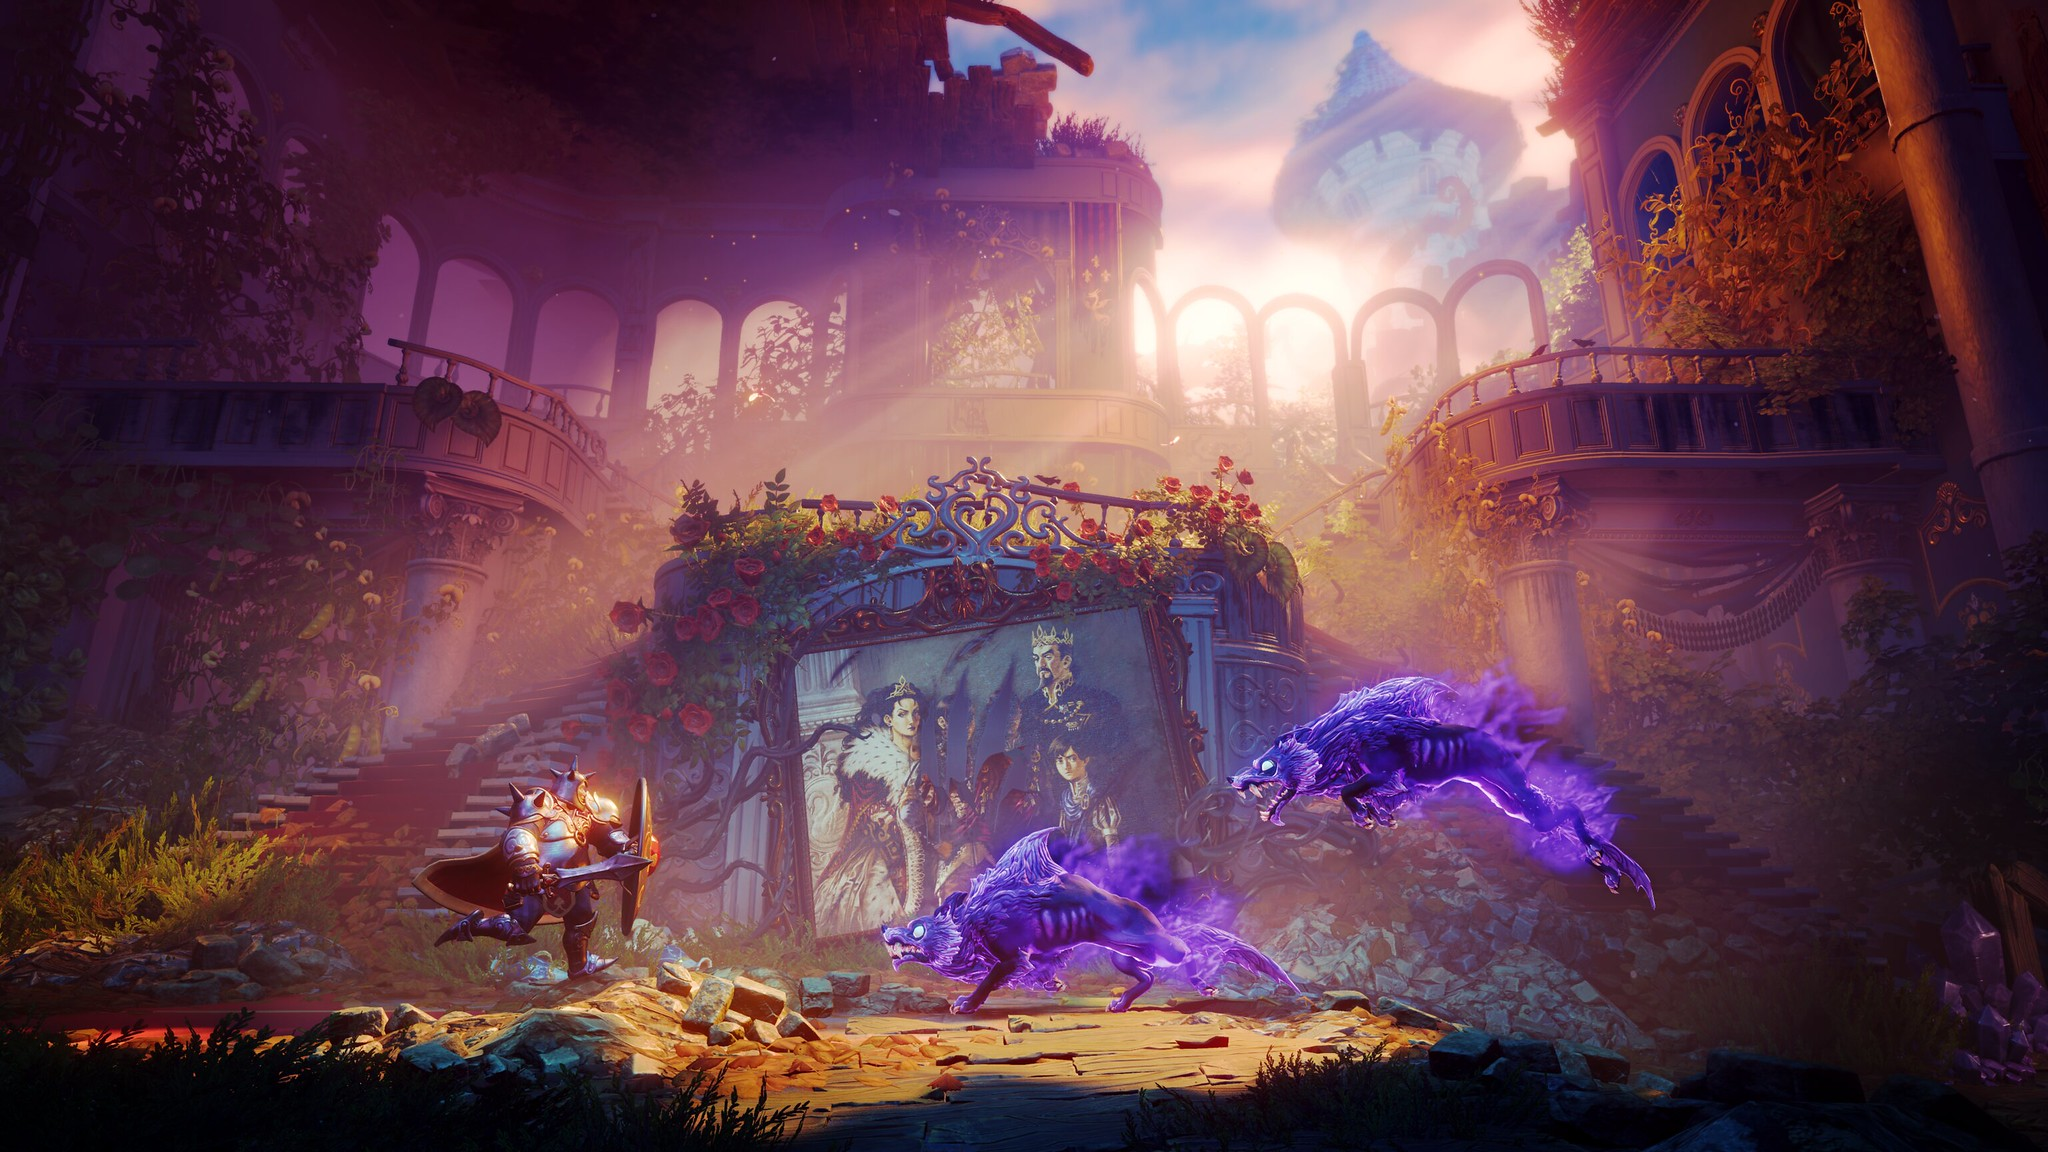 Trine 4: The Nightmare Prince is coming October 8th